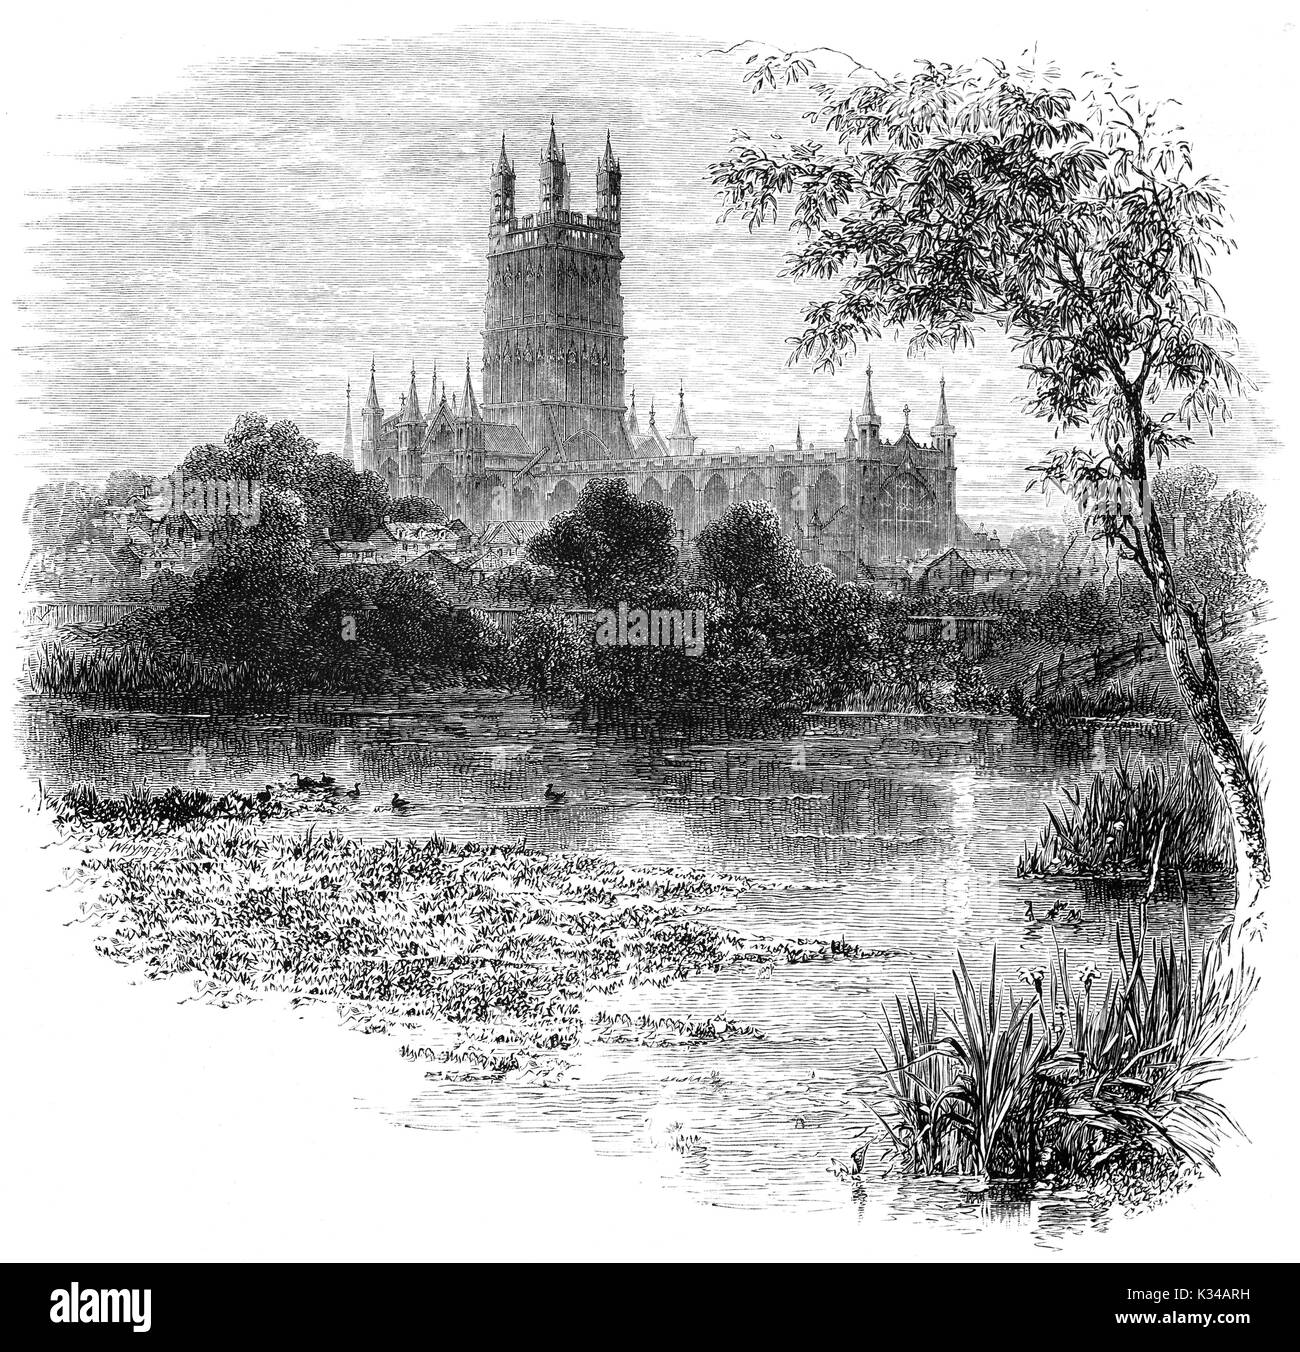 1870: Gloucester Cathedral, formally the Cathedral Church of St Peter and the Holy and Indivisible Trinity viewed from across  the River Severn. It originated in 678 or 679 and was dissolved by King Henry VIII. Gloucester, England. - Stock Image